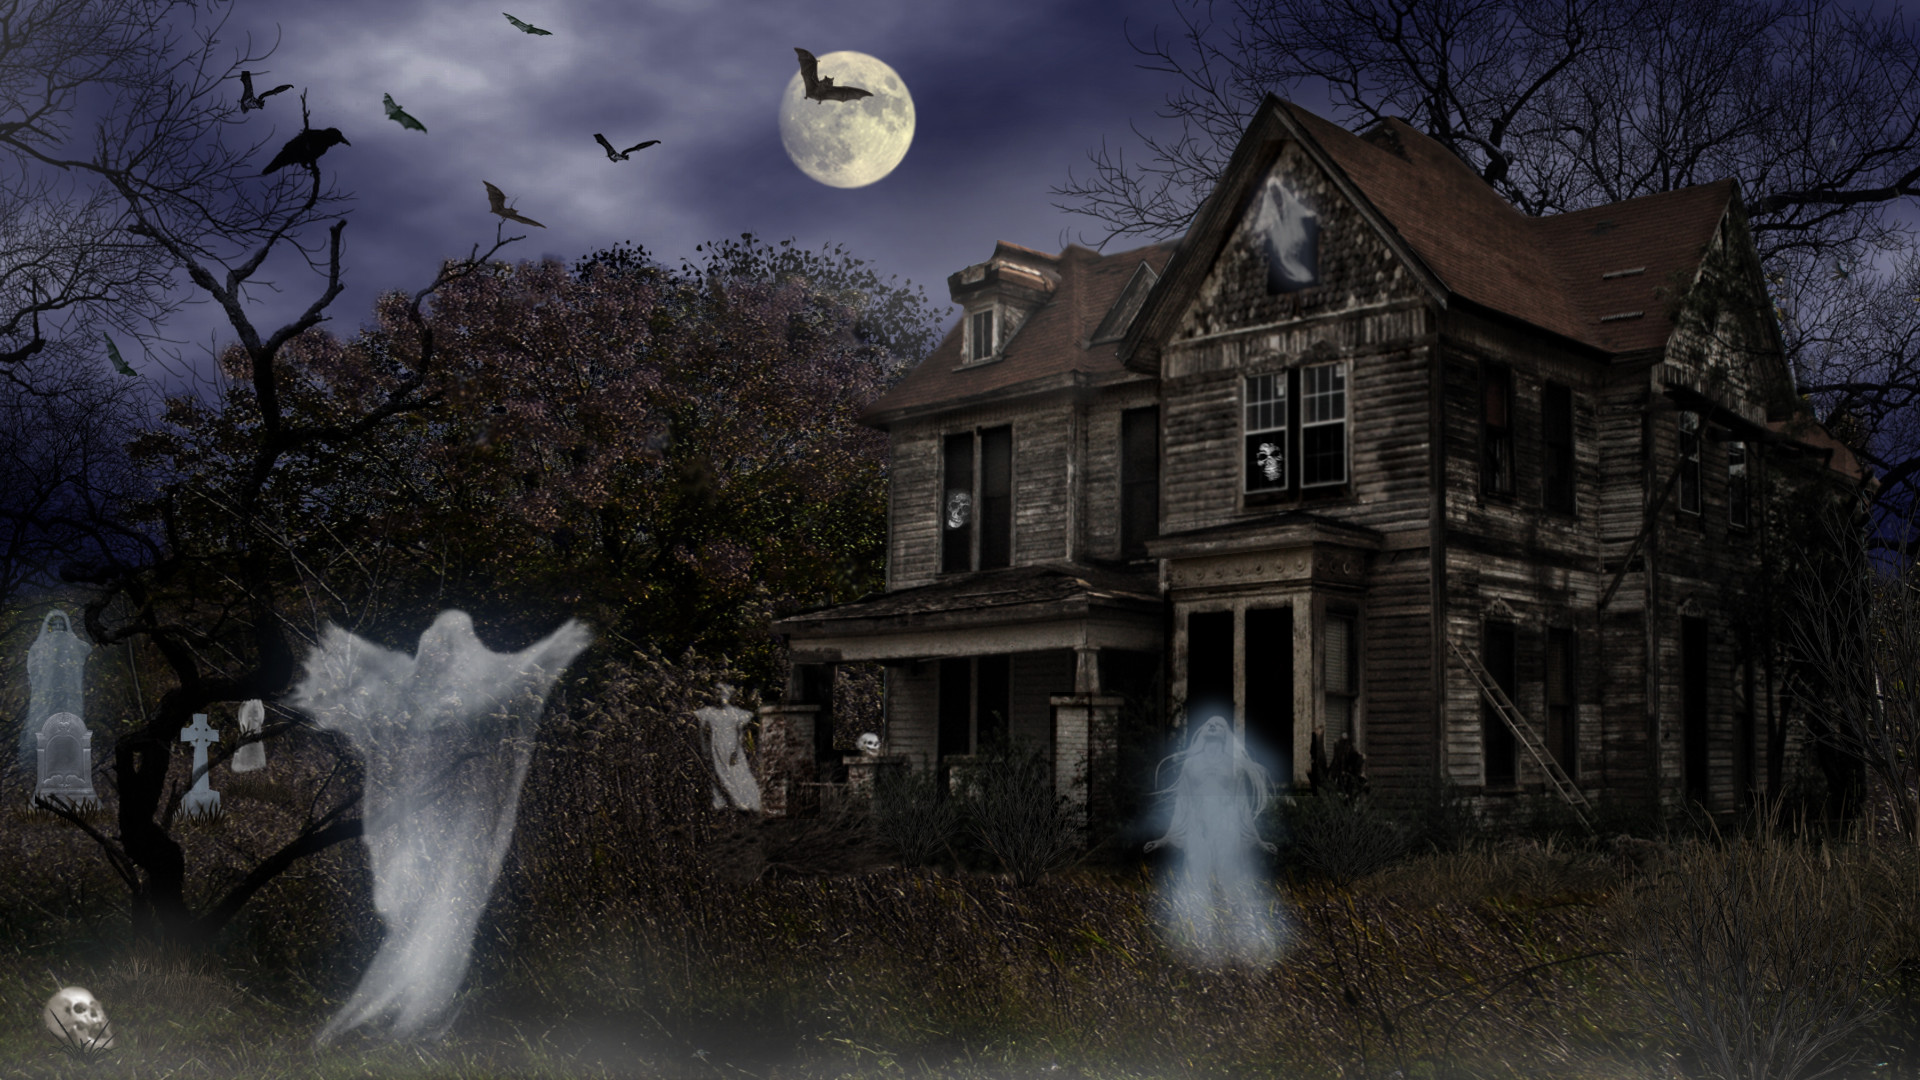 1920x1080 Vacances Halloween Vacances Haunted House Maison Night Effrayant Fond  d'écran | Wallpaper HD | Pinterest | Halloween haunted houses and Wallpaper